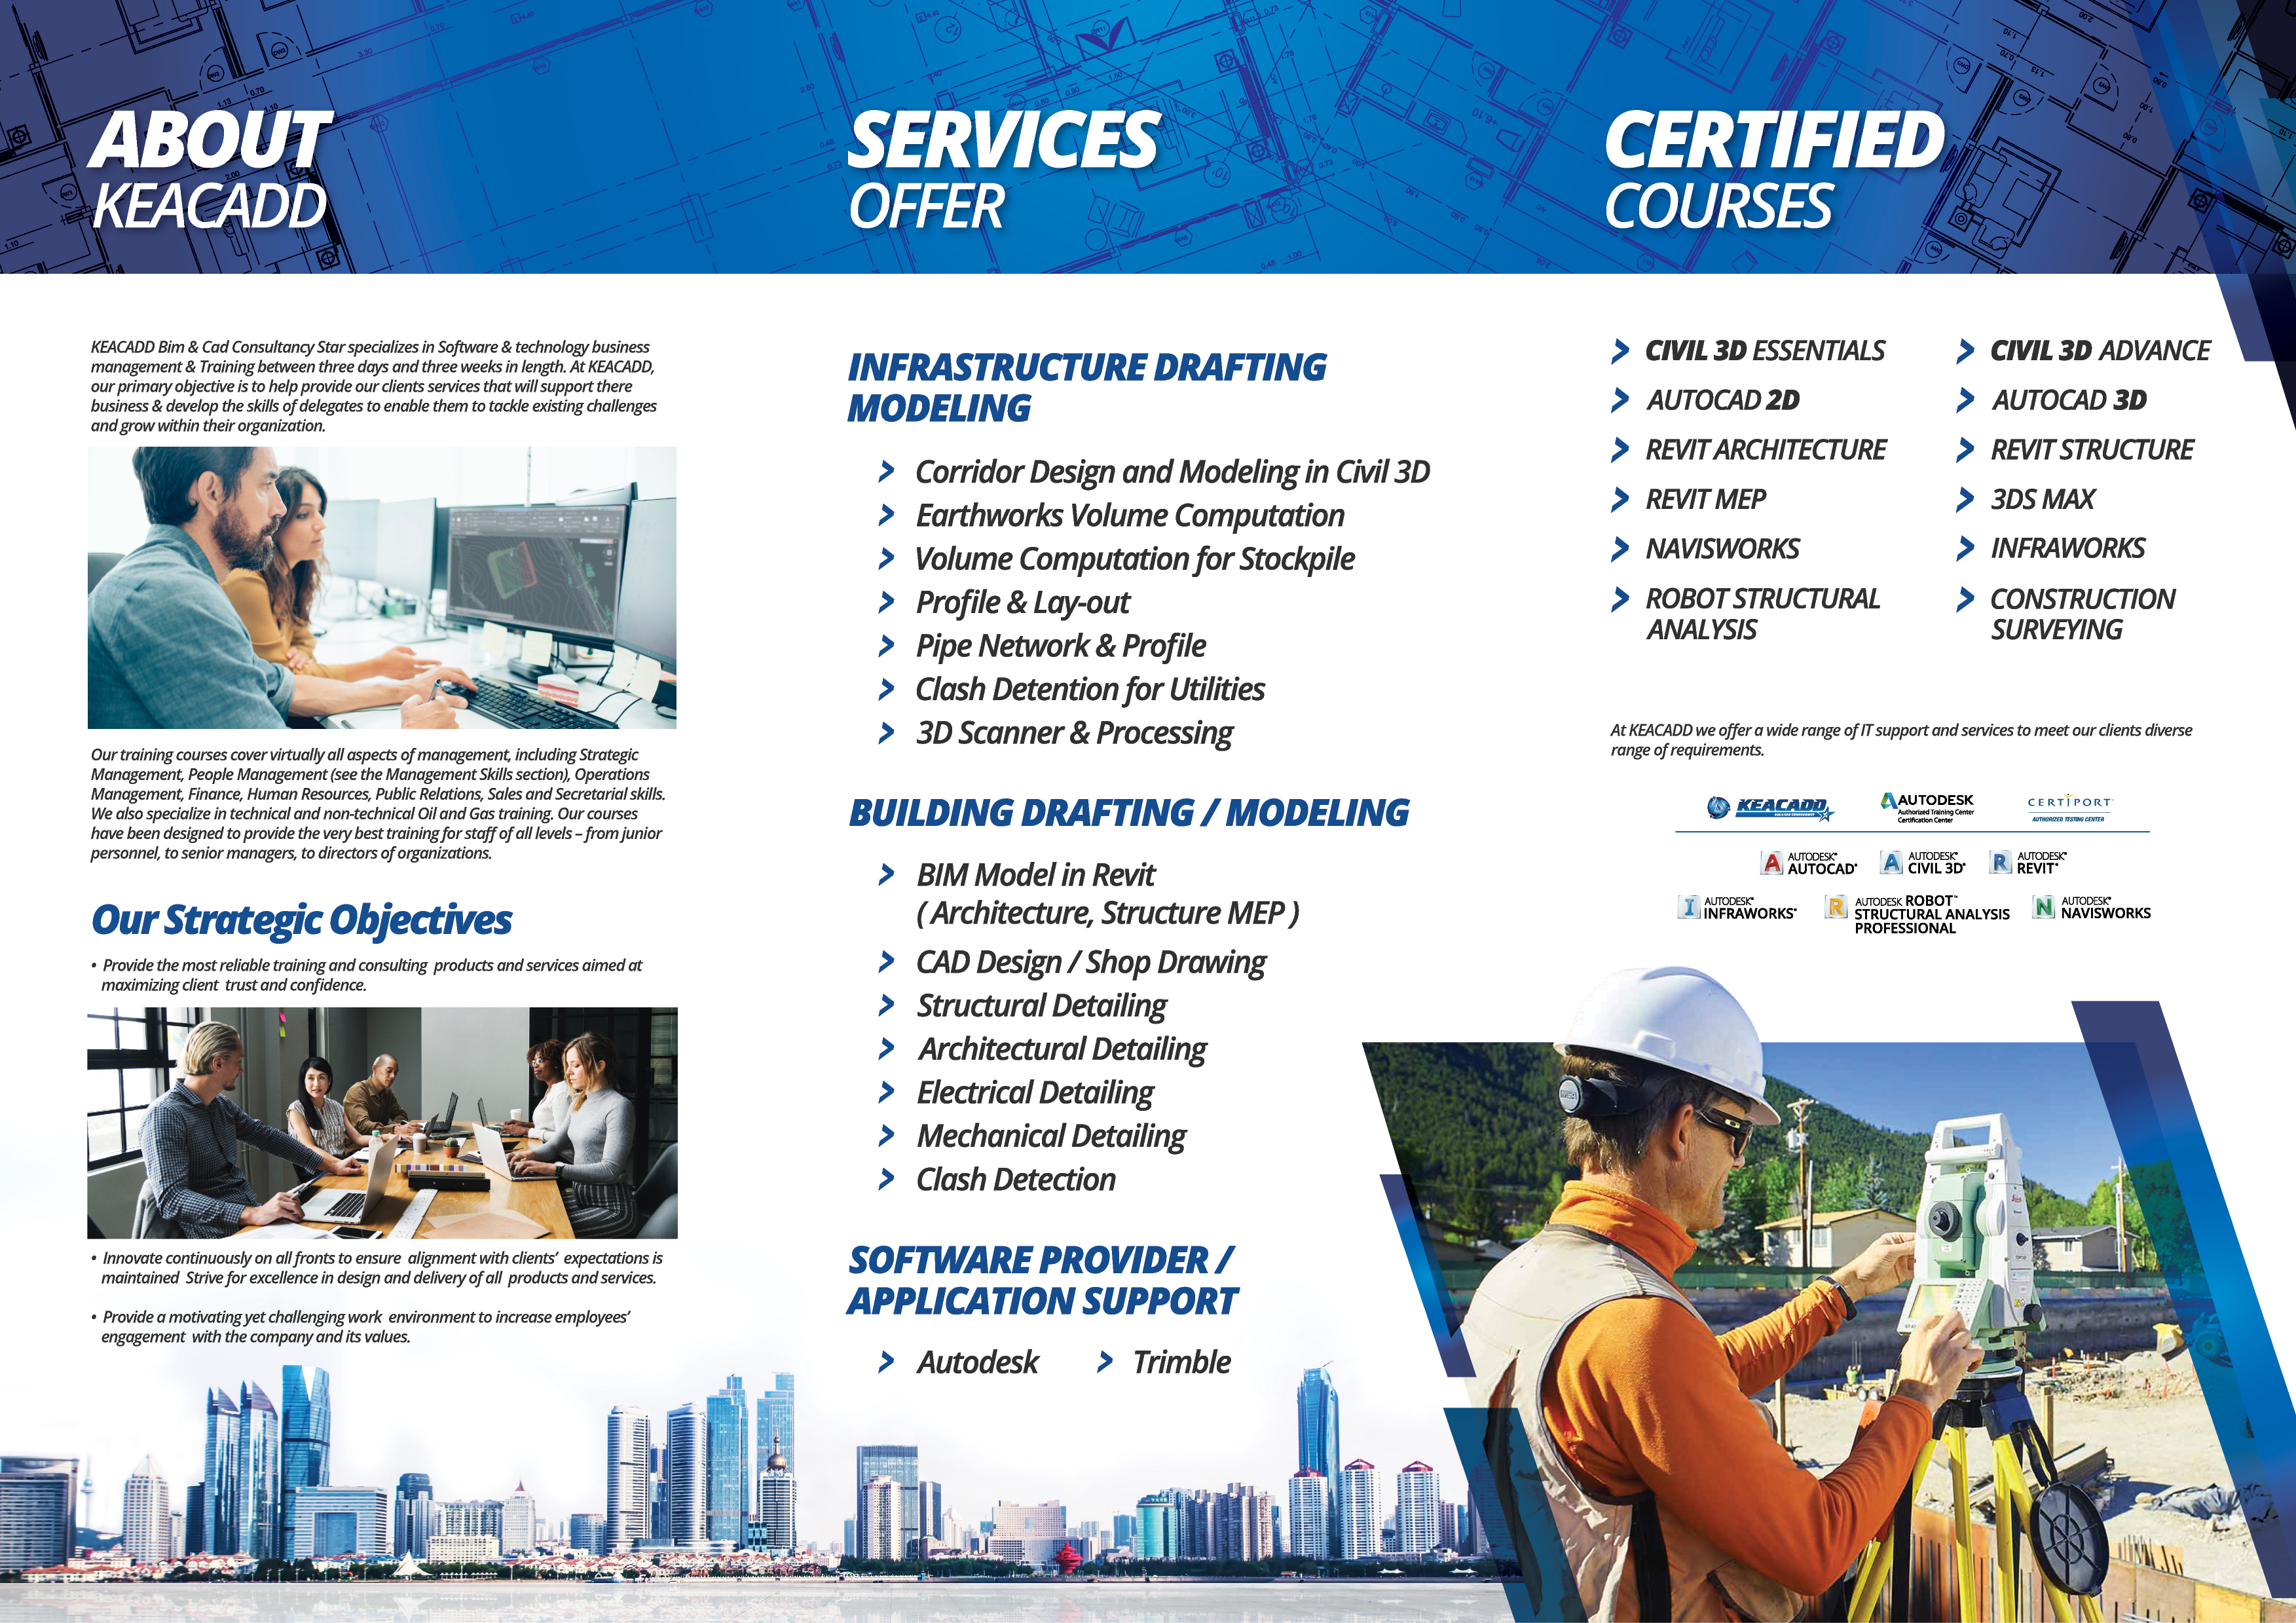 AUTODESK COURSES CERTIFIED PROFESSIONAL